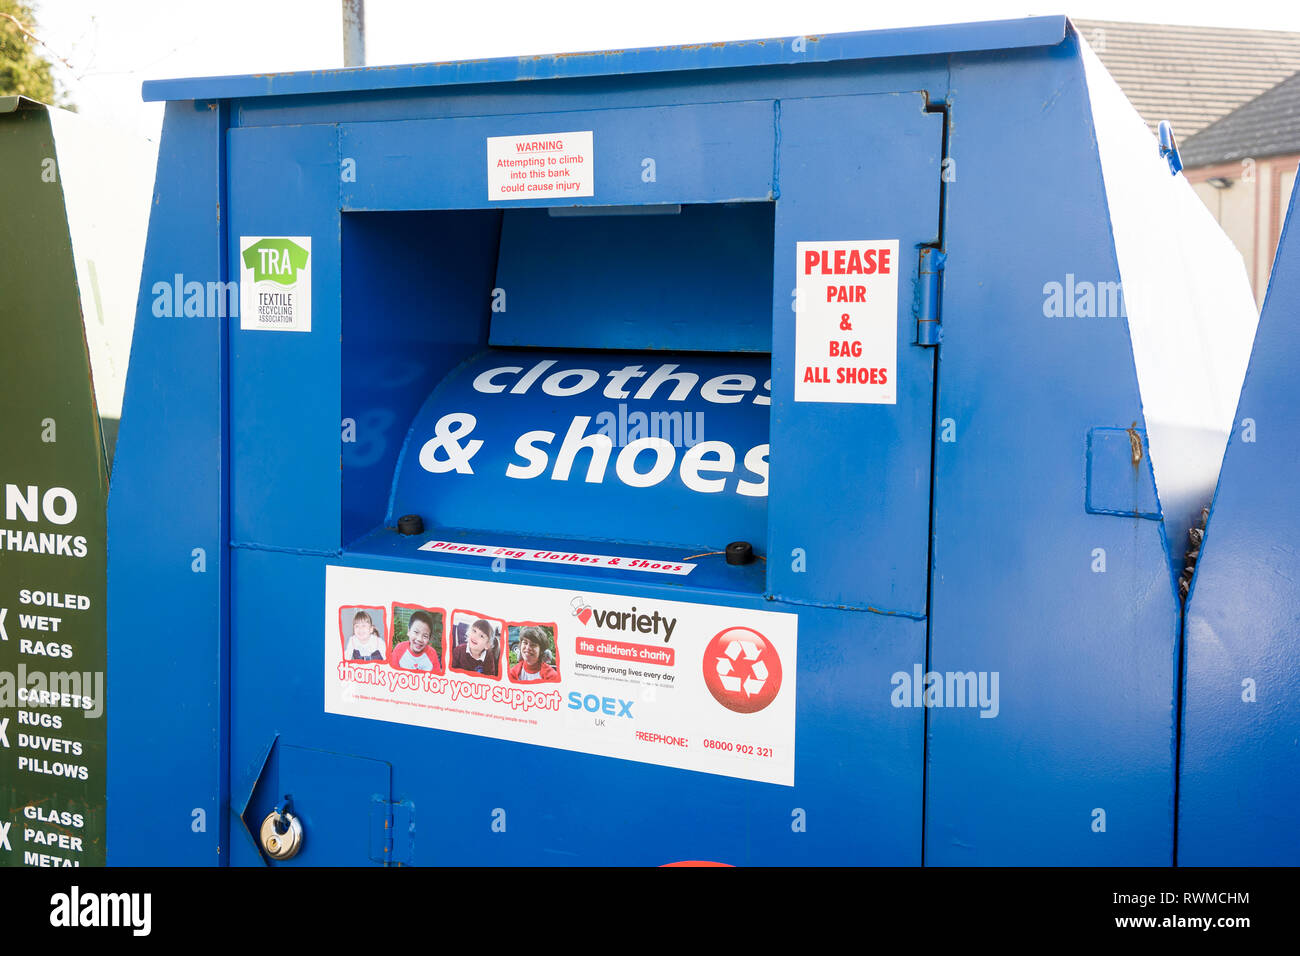 Distinctive large blue metal receptacle for donations of surplus clean and serviceable clothing and shoes for recycling with proceeds going to sponsor - Stock Image